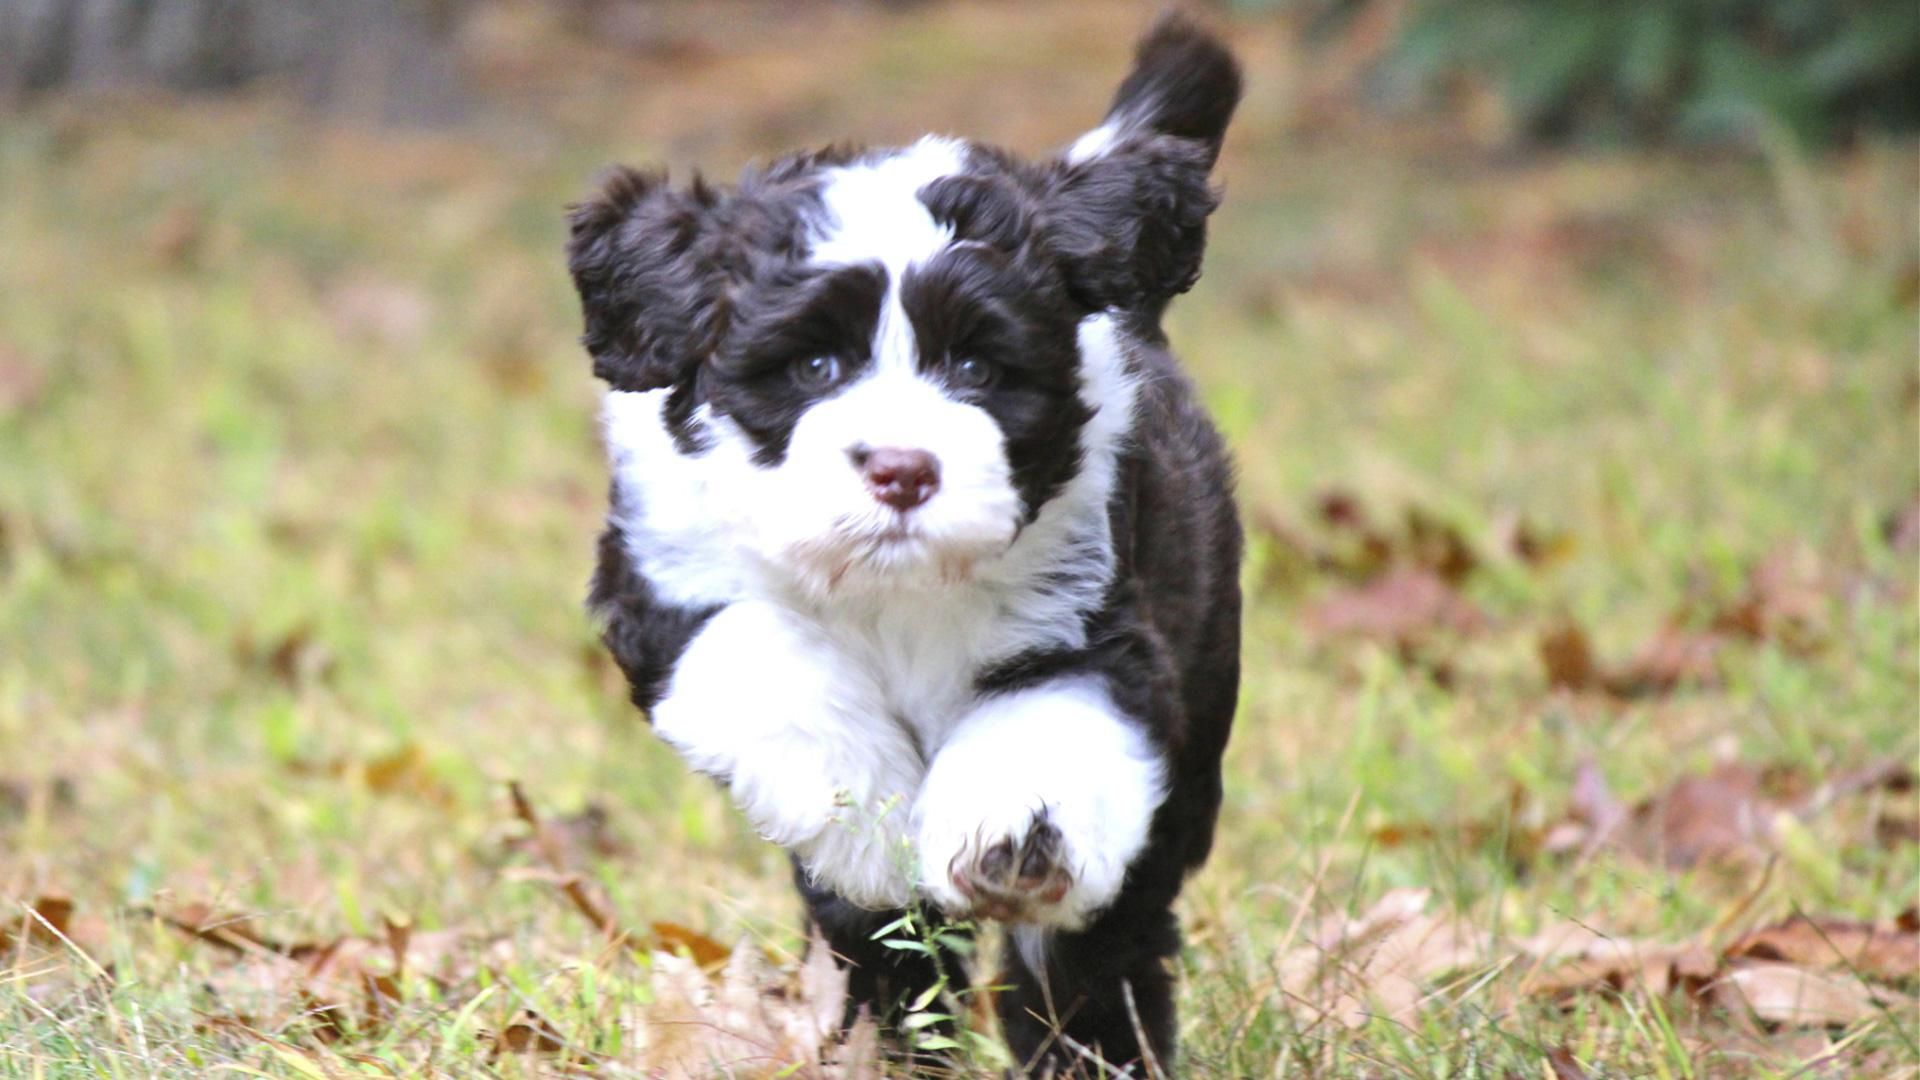 Meet The Breed Portuguese Water Dog 1 920 1 080 Pixels Dog Breeds Medium Best Dogs For Kids Dogs And Kids